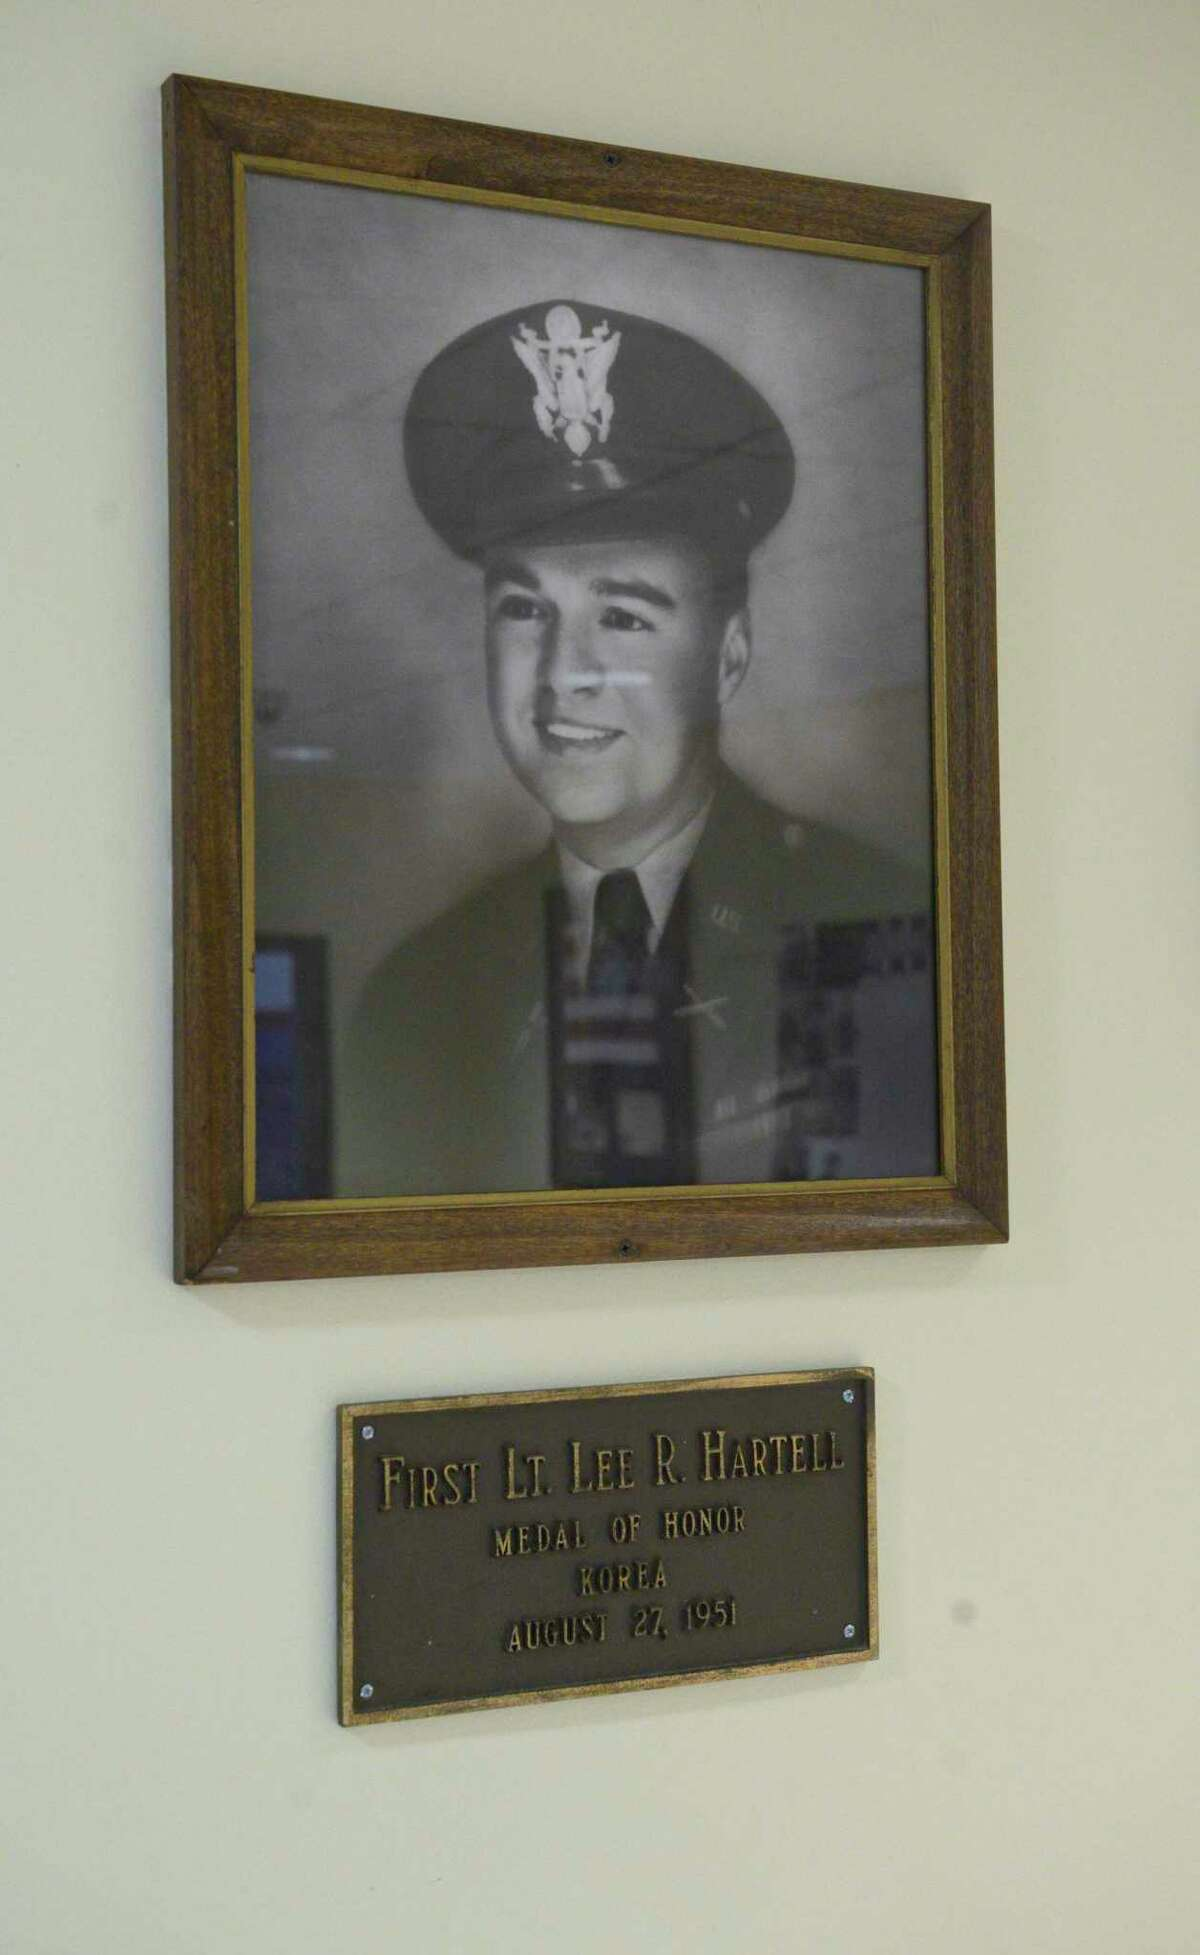 A photograph of First Lt. Lee Hartell, the only Danbury resident since the Civil War to recieve the Congressional Medal of Honor, in the lobby of the War Memorial building. Thursday, May 27, 2021, in Danbury, Conn.